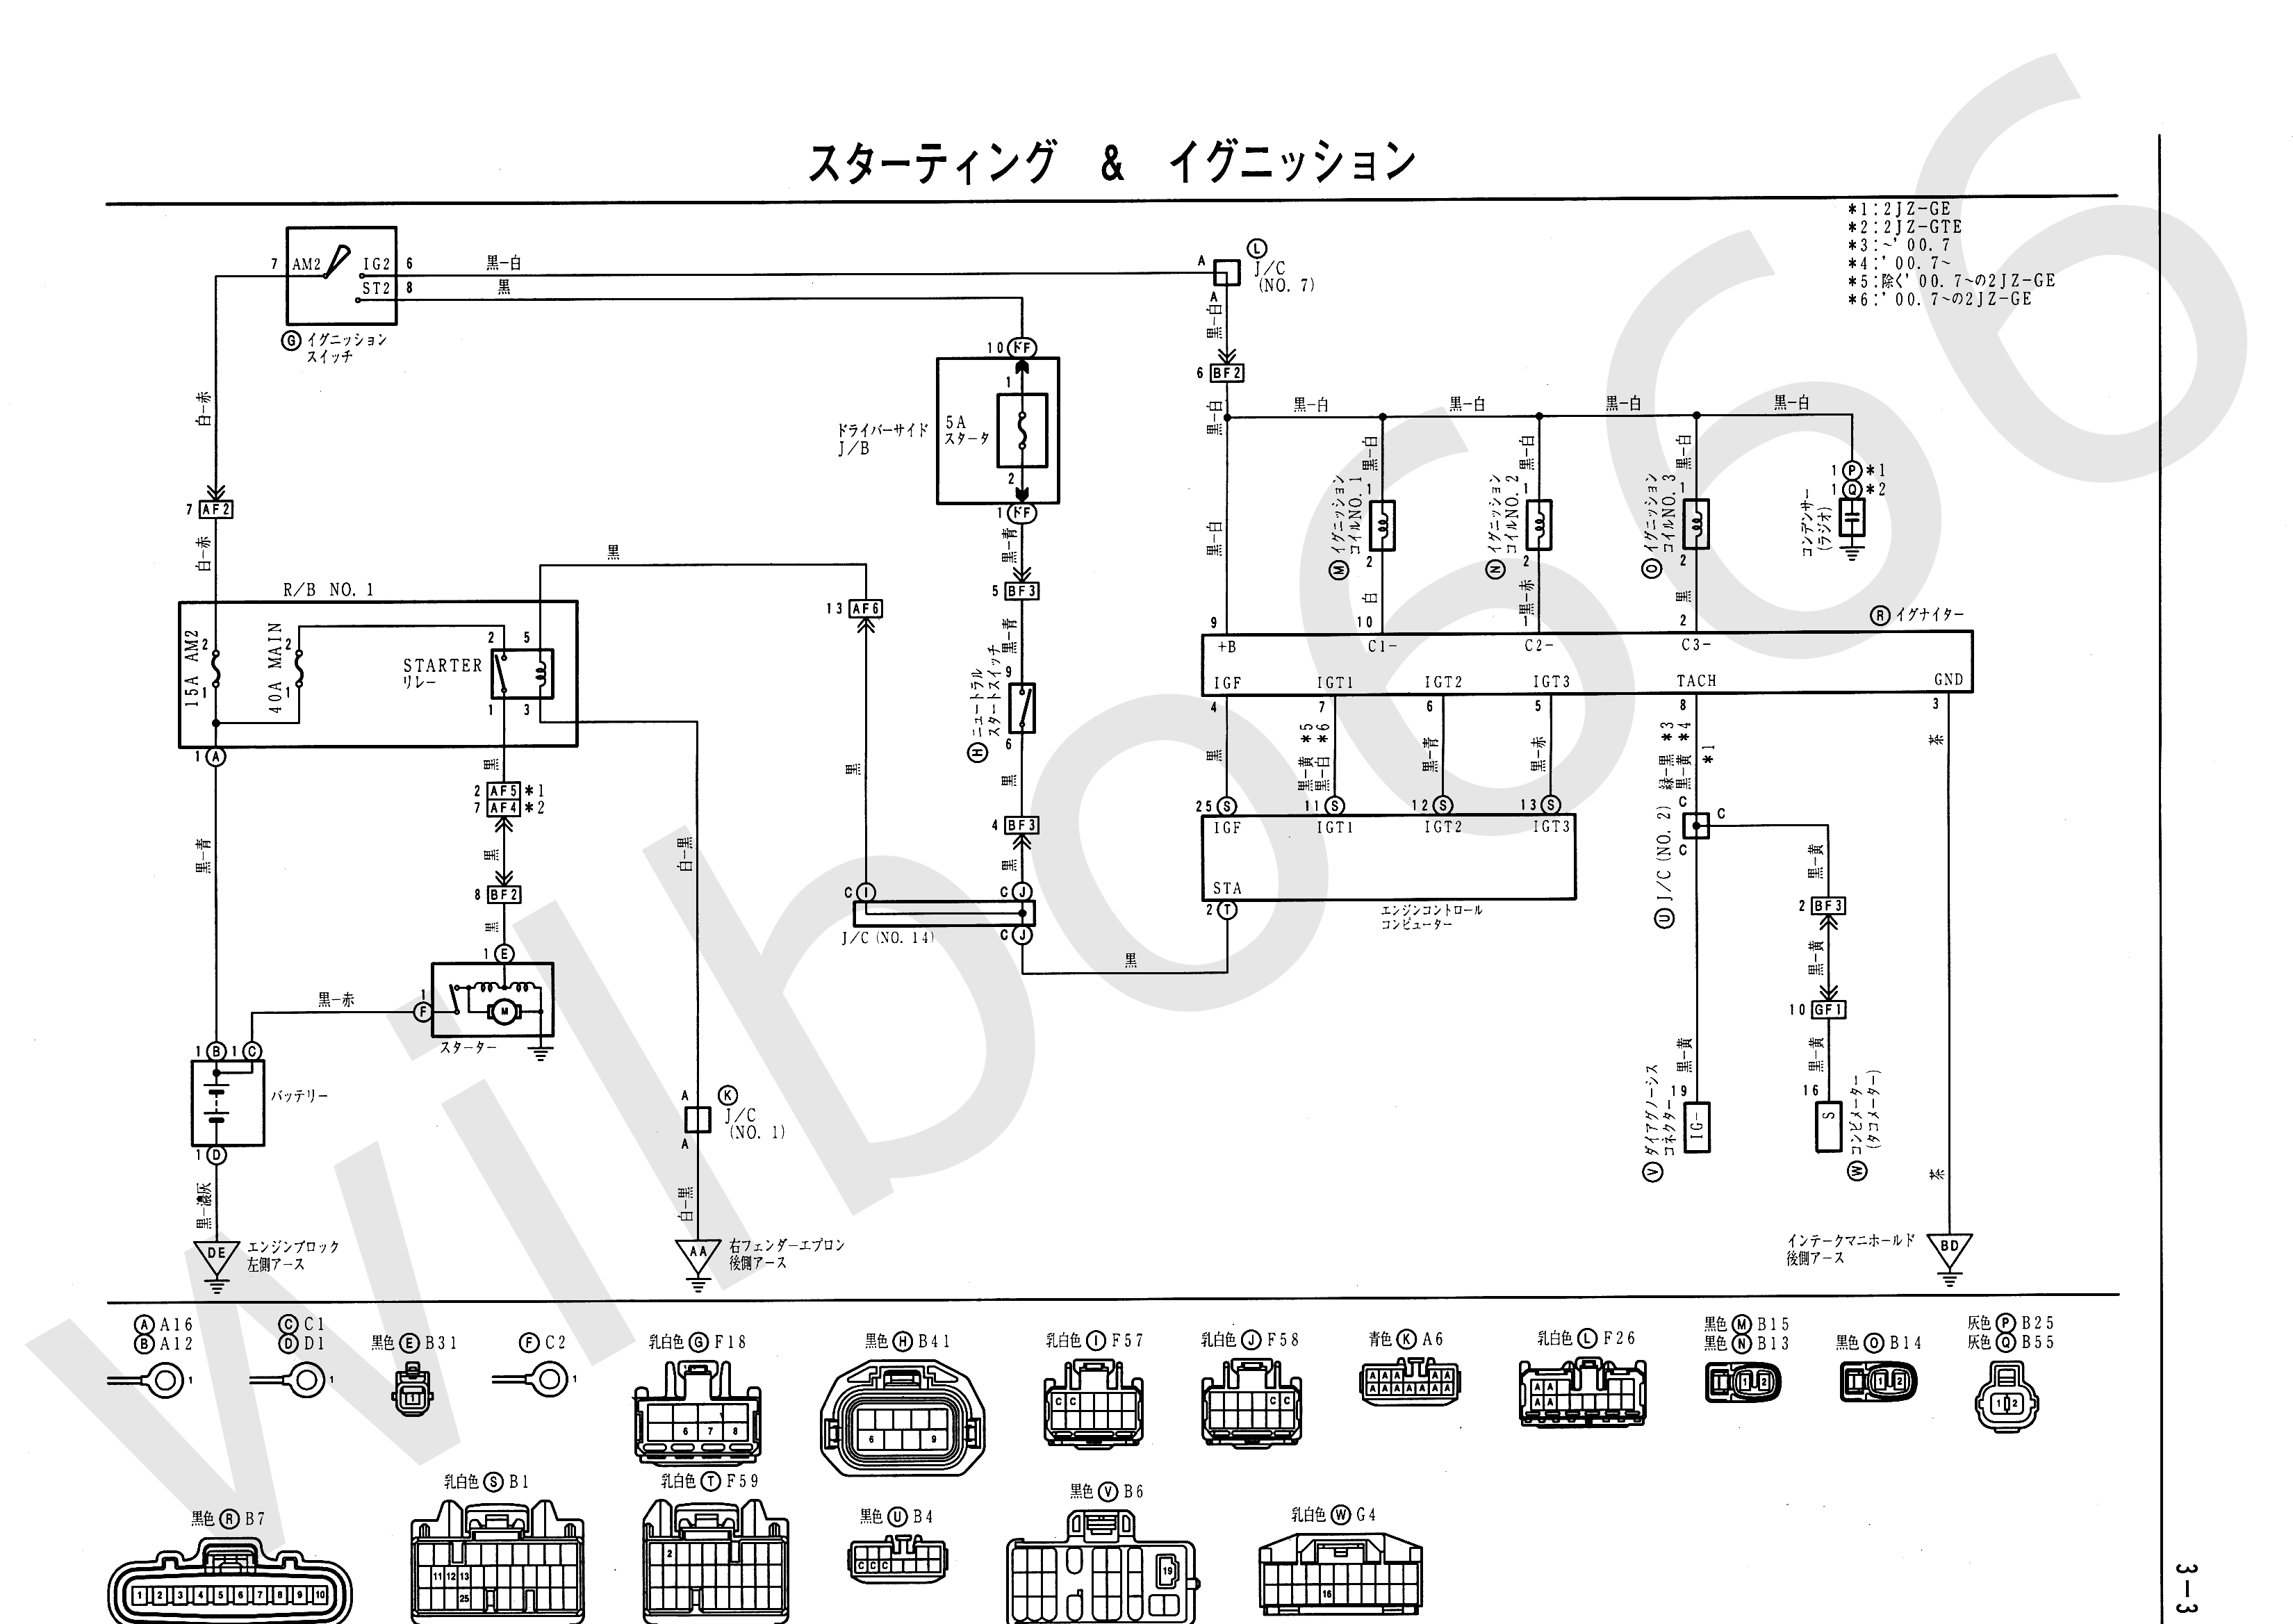 JZS161 Electrical Wiring Diagram 6748505 3 3 wilbo666 2jz gte vvti jzs161 aristo engine wiring  at bayanpartner.co